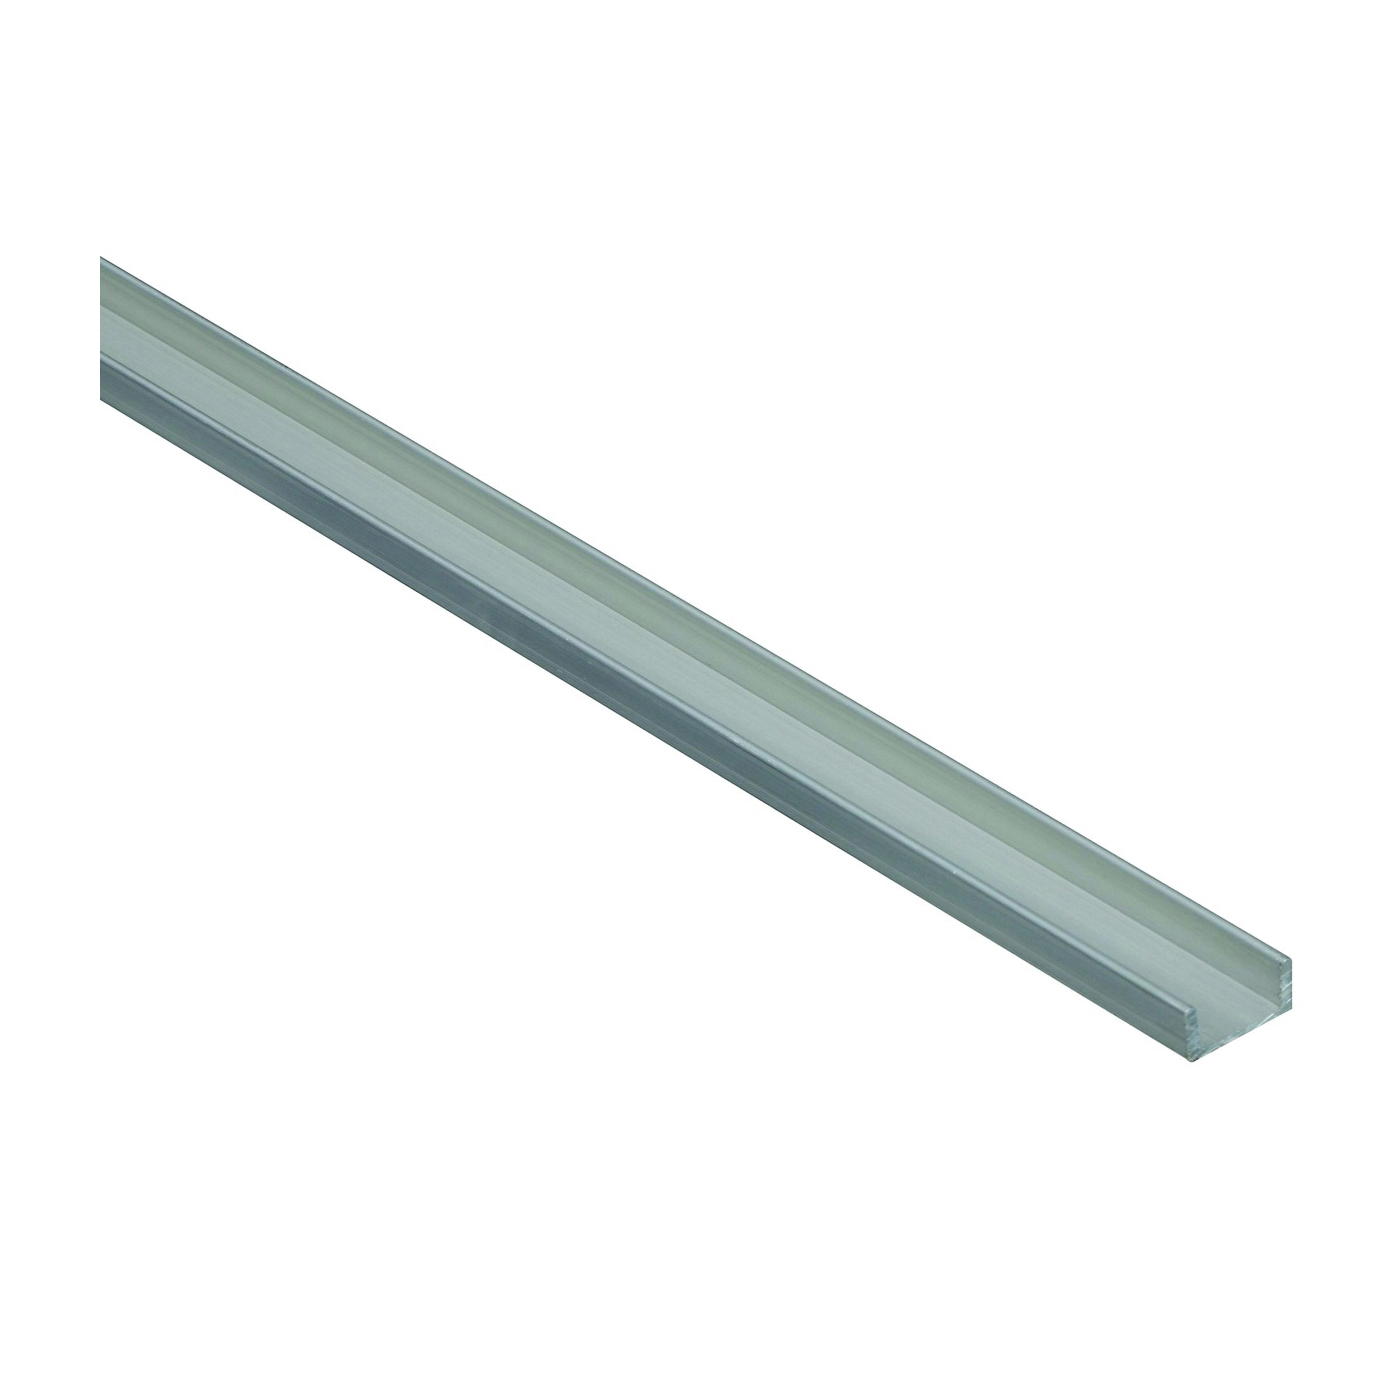 Picture of Stanley Hardware 4208BC Series 258541 Channel, 96 in L, 1/16 in Thick, Aluminum, Mill